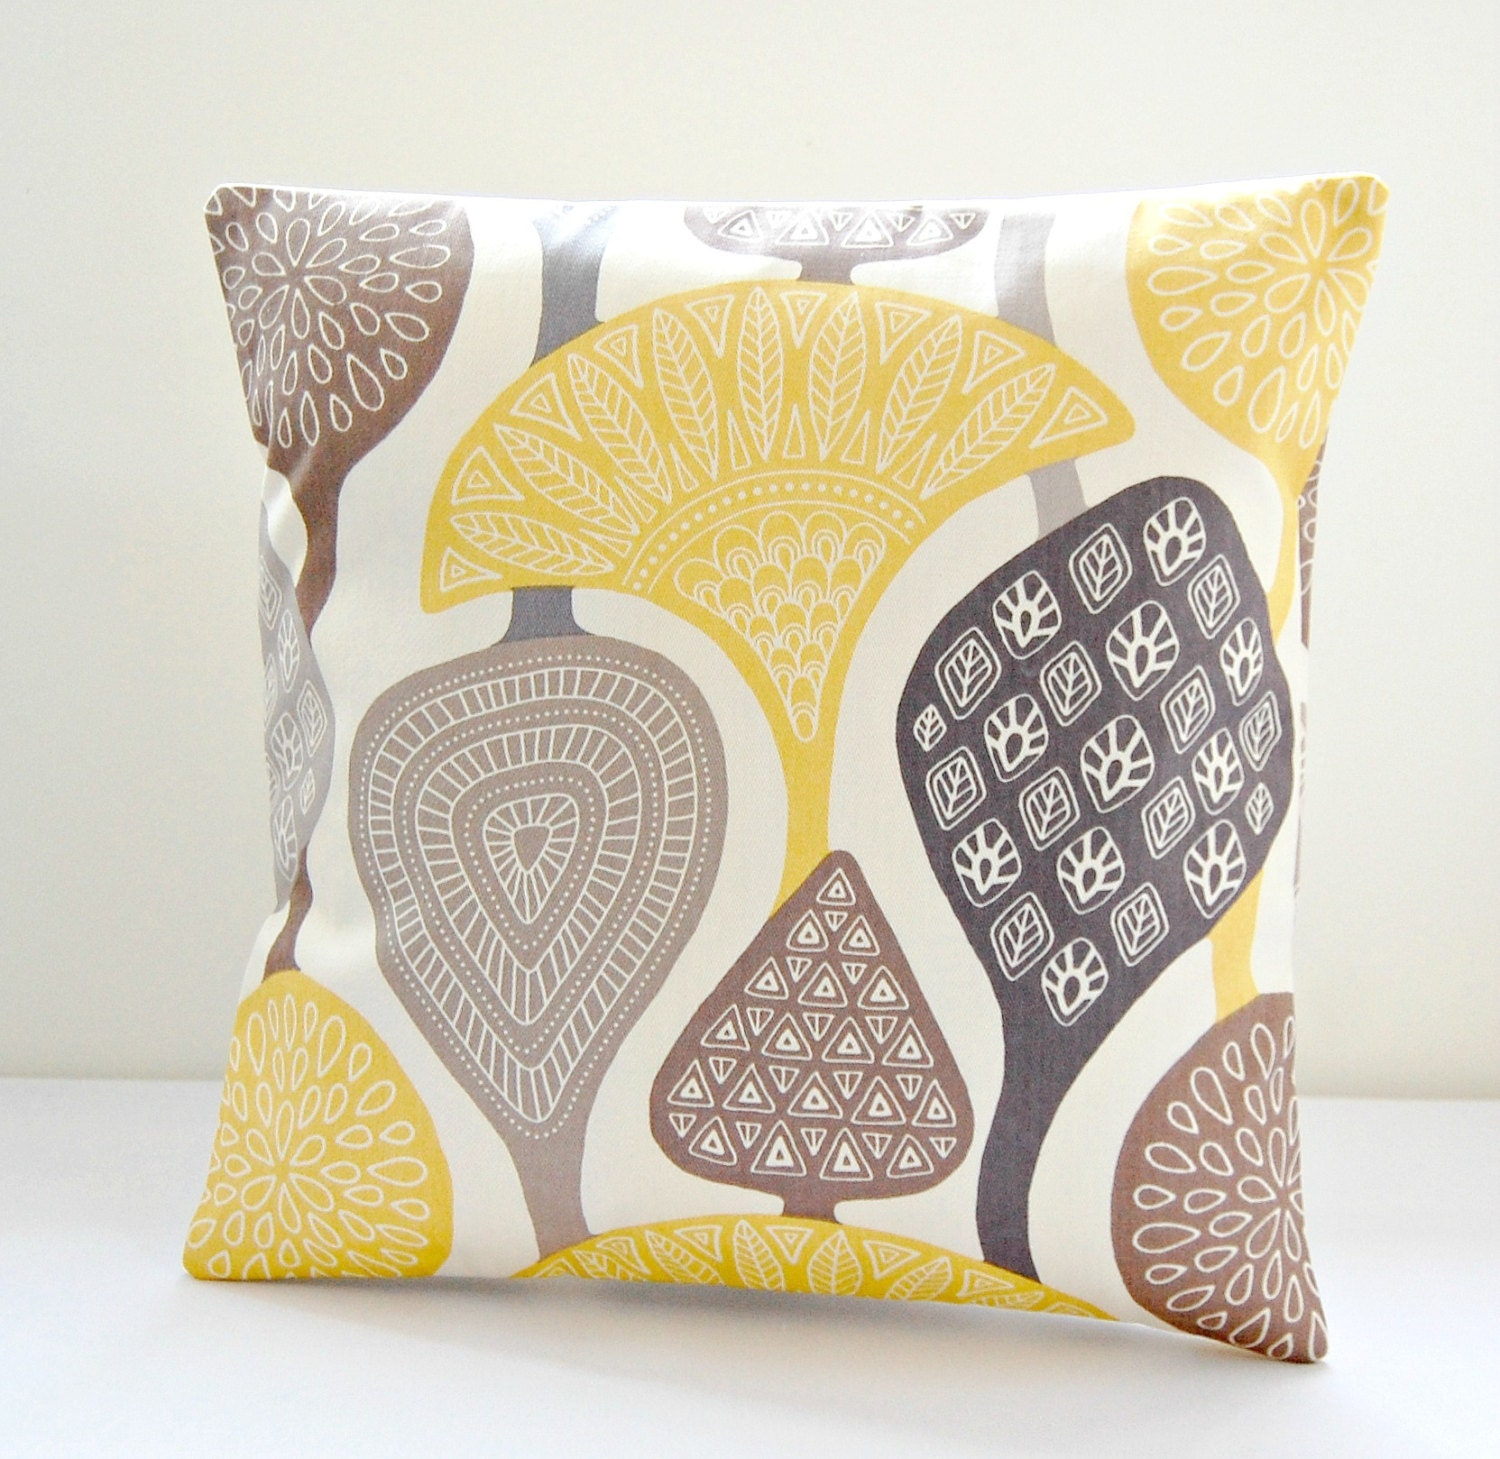 Vintage Inspired Throw Pillows : cushion cover yellow gray taupe retro style decorative pillow